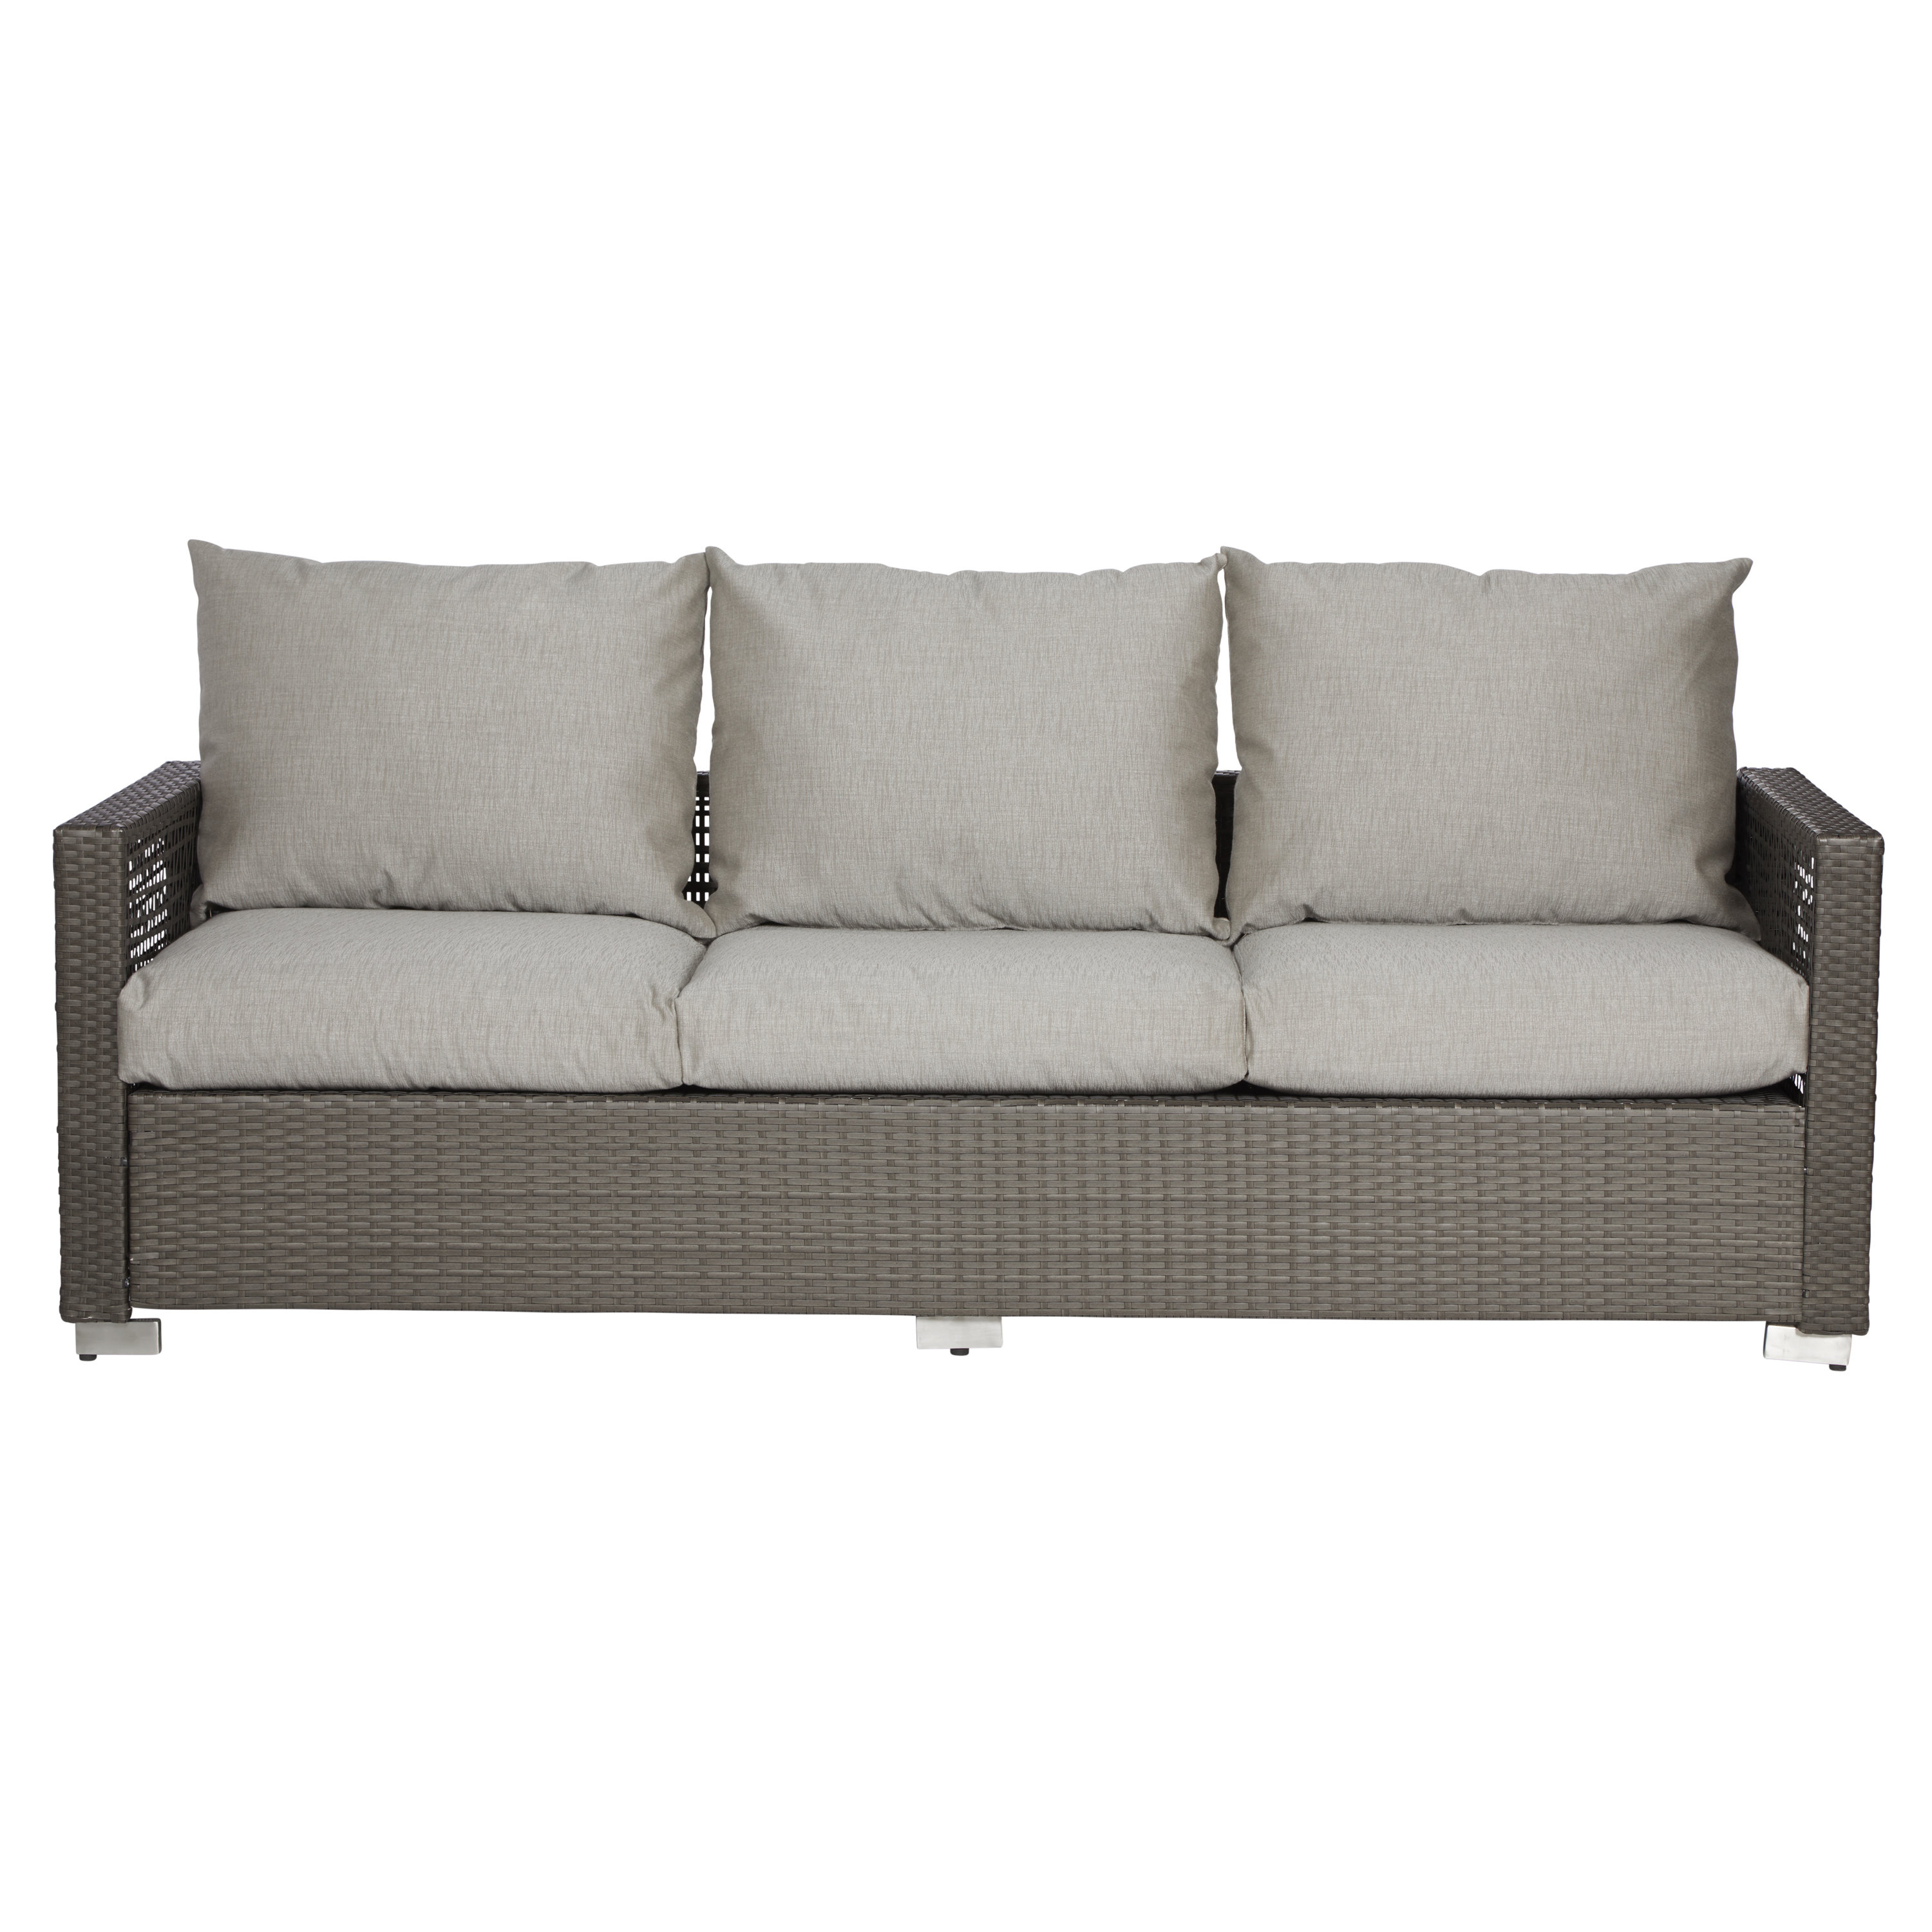 Most Recent Mcmanis Patio Sofa With Cushions In Katzer Patio Sofas With Cushions (View 8 of 20)